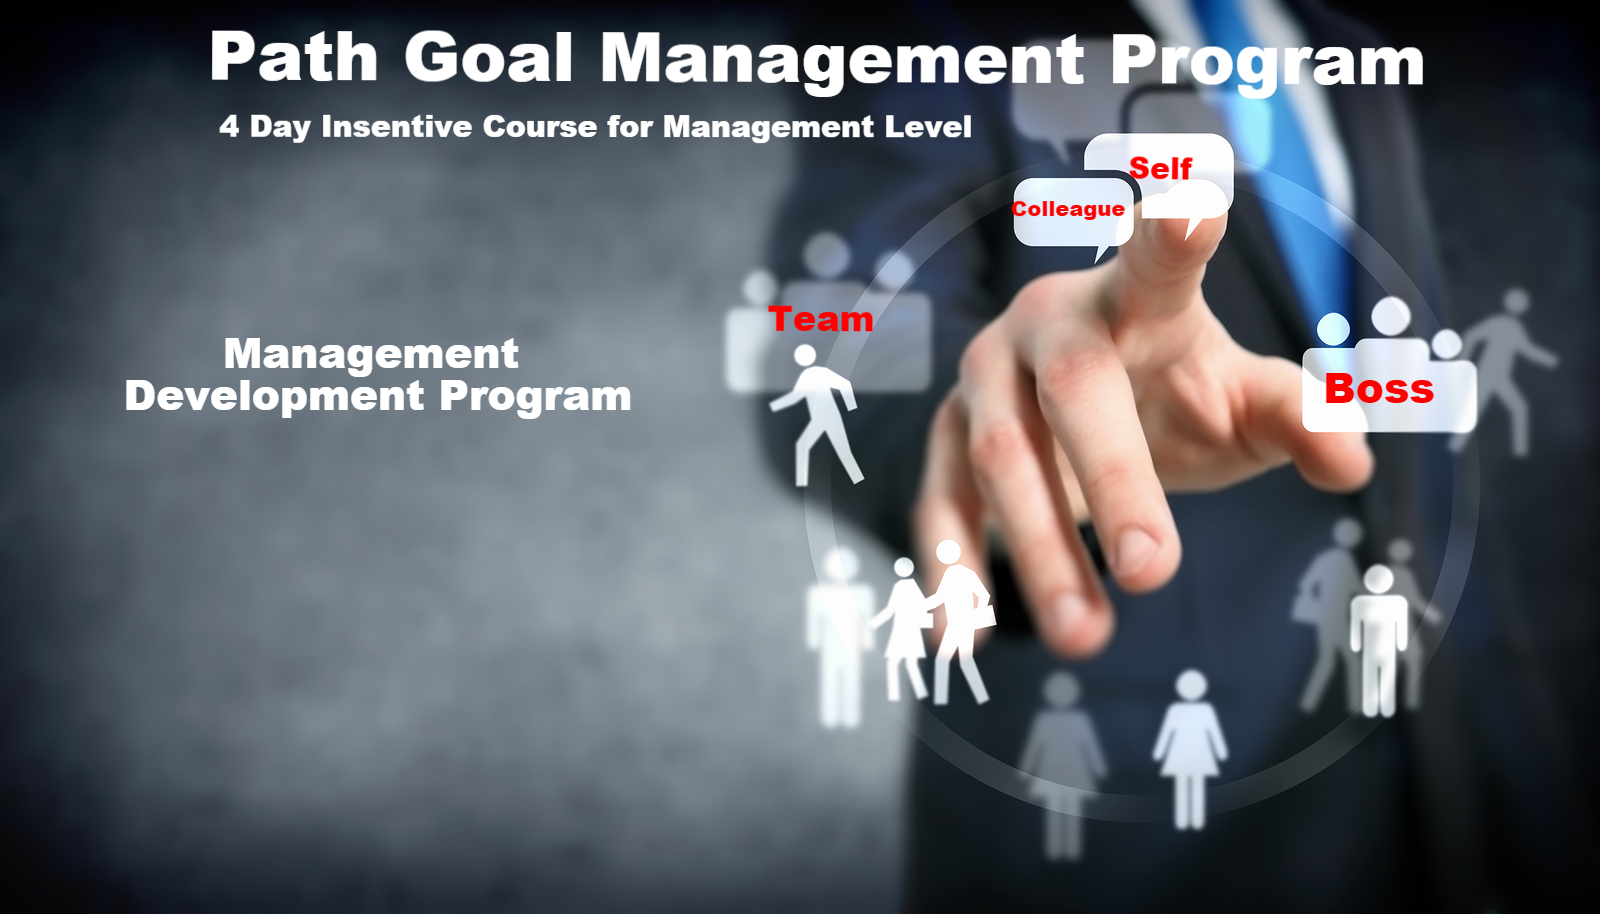 Path Goal Management Program